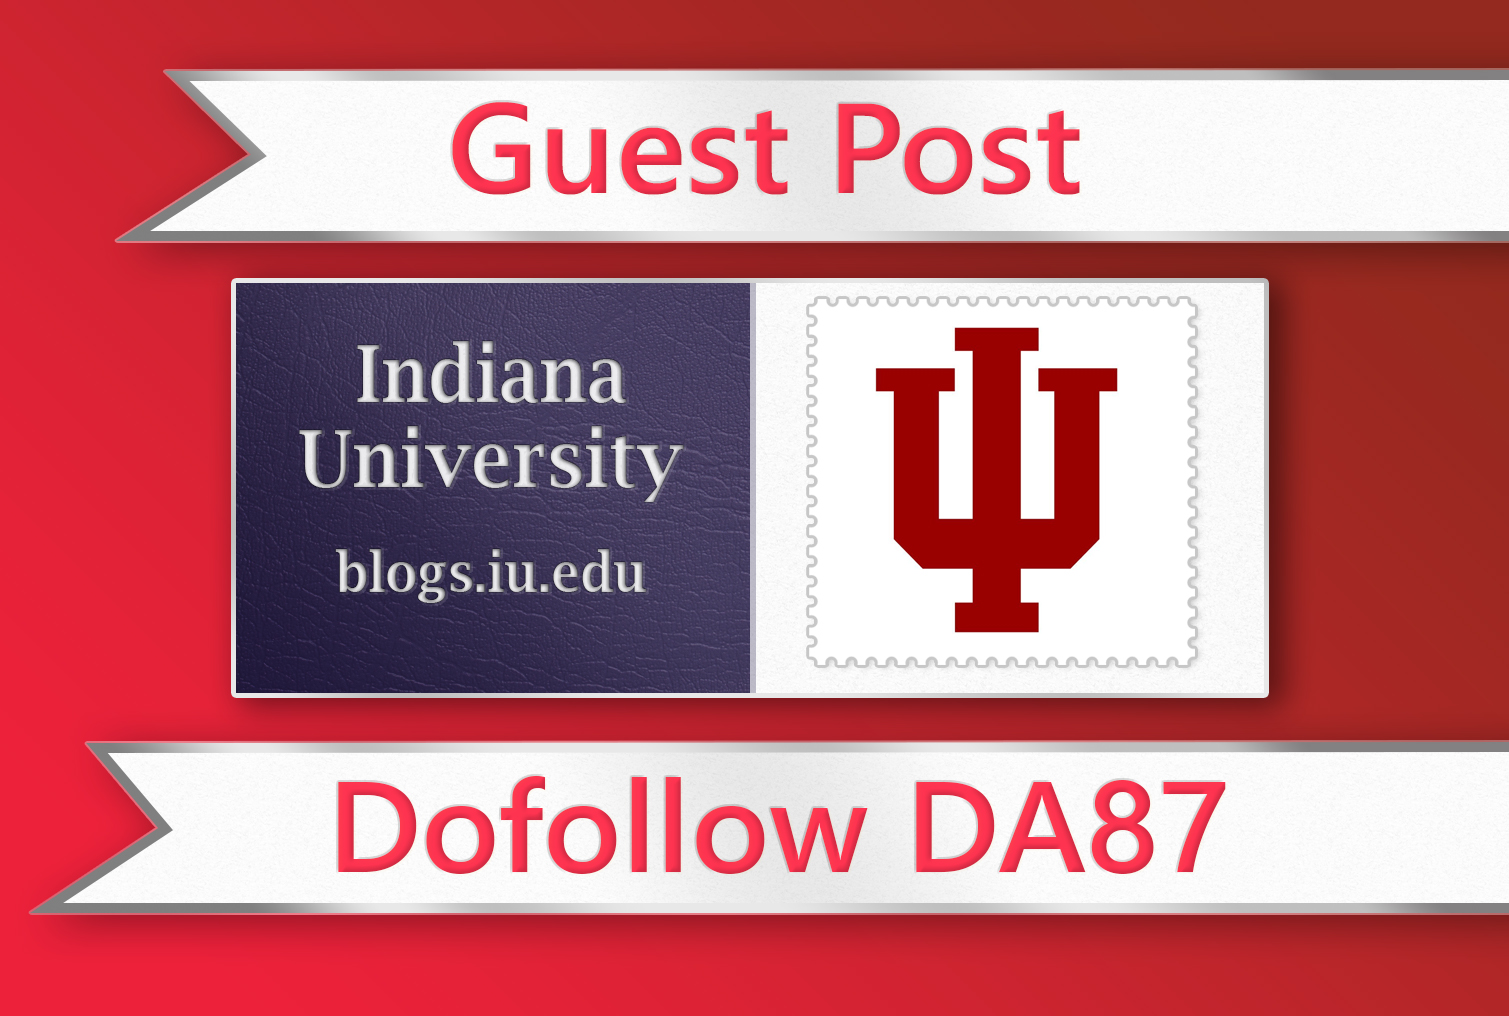 Guest post on Indiana - DA87